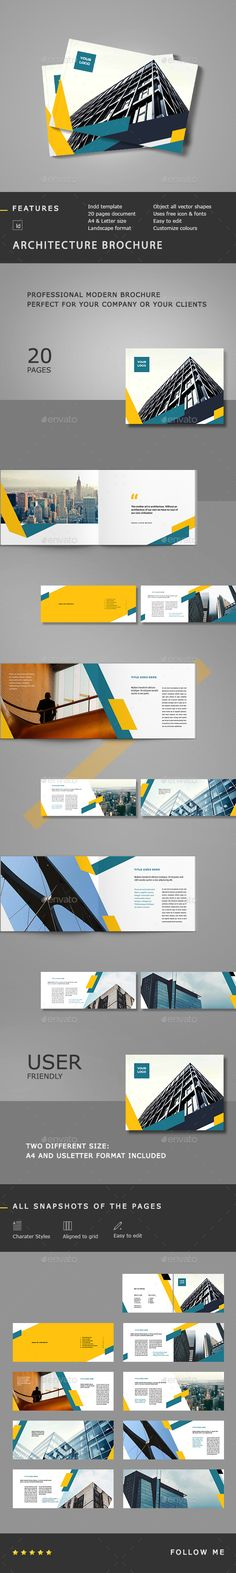 Architecture Landscape Brochure Template InDesign INDD #design Download…